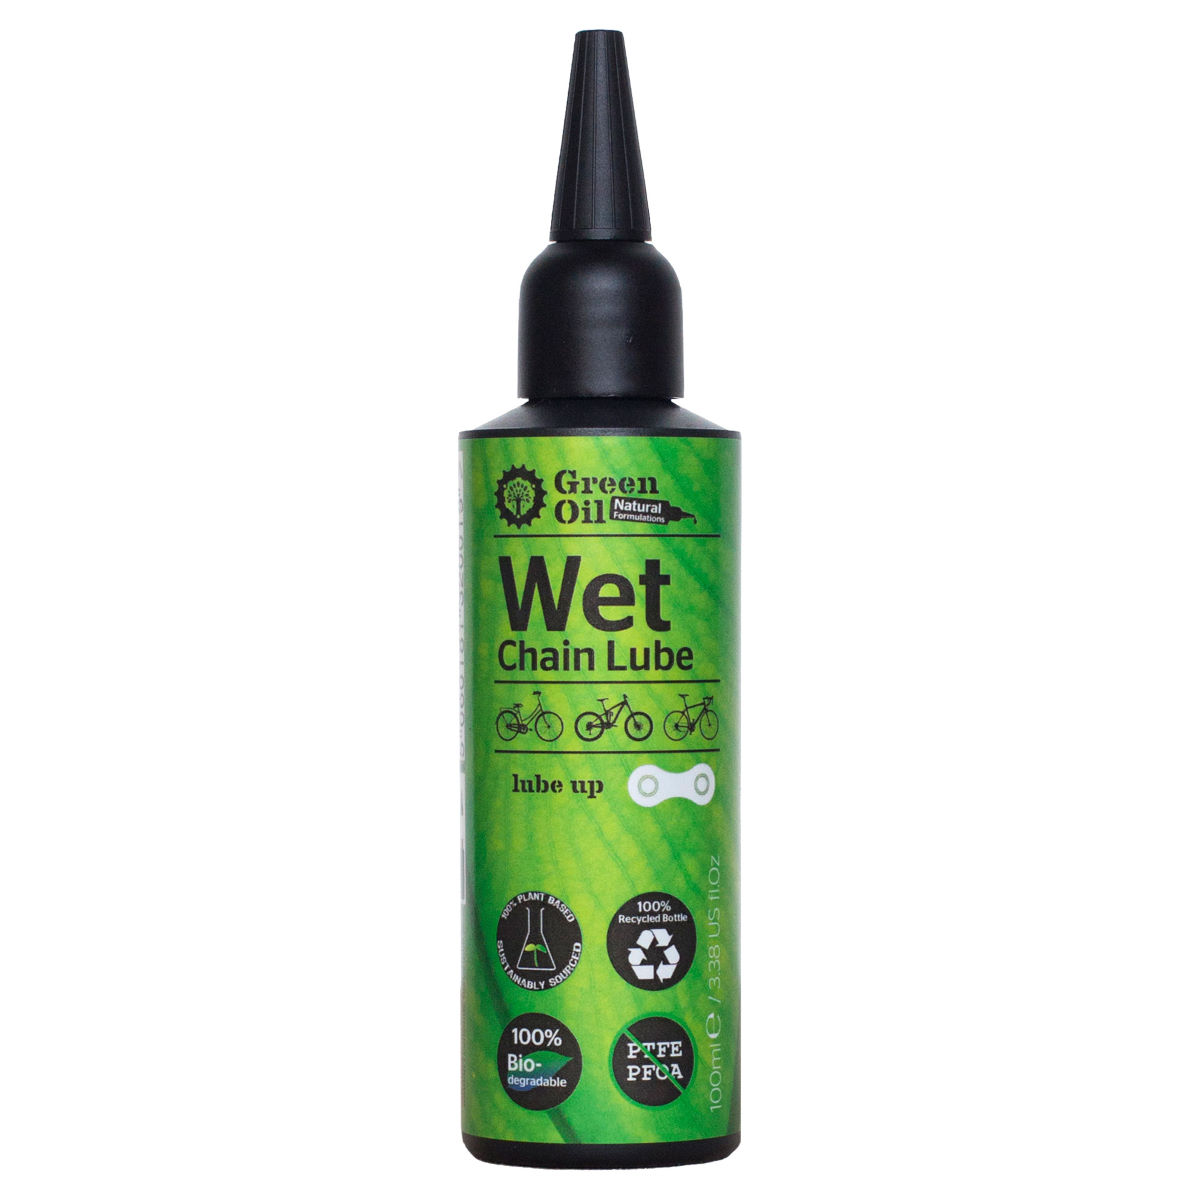 Green Oil Green Oil Ecological Chain Lube 100ml   Lube